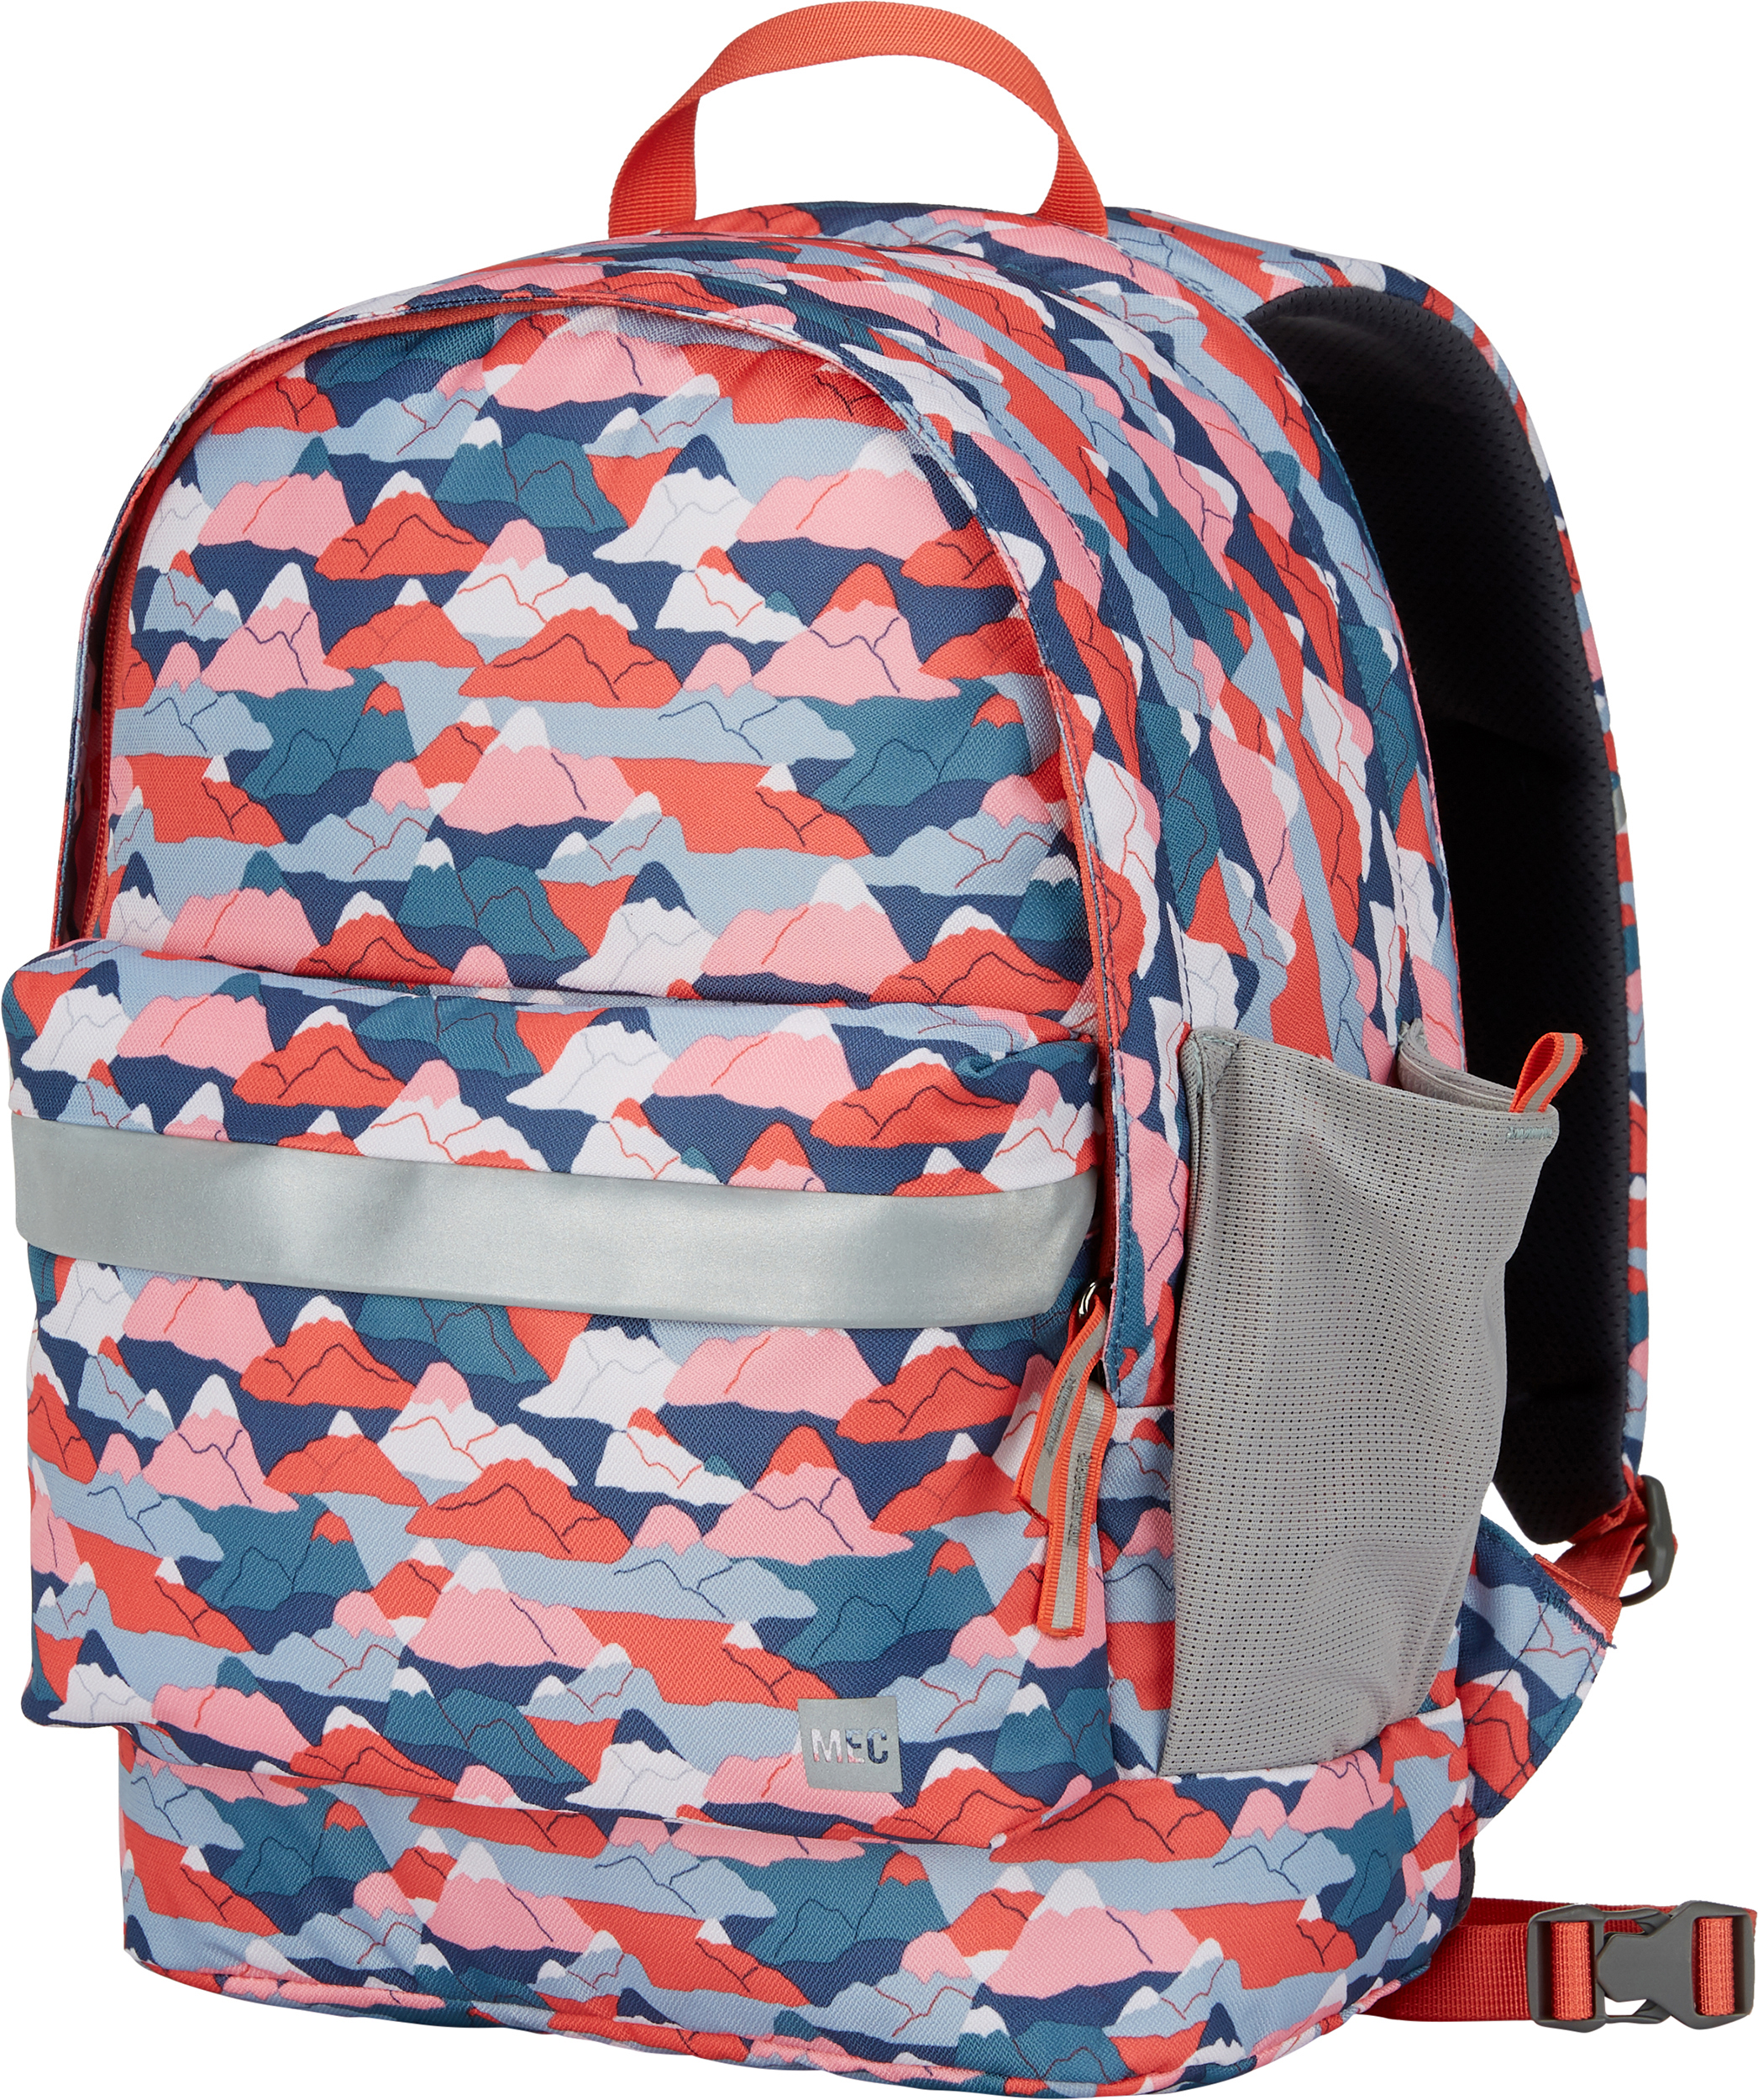 da5ea9efcf Daypacks and school bags